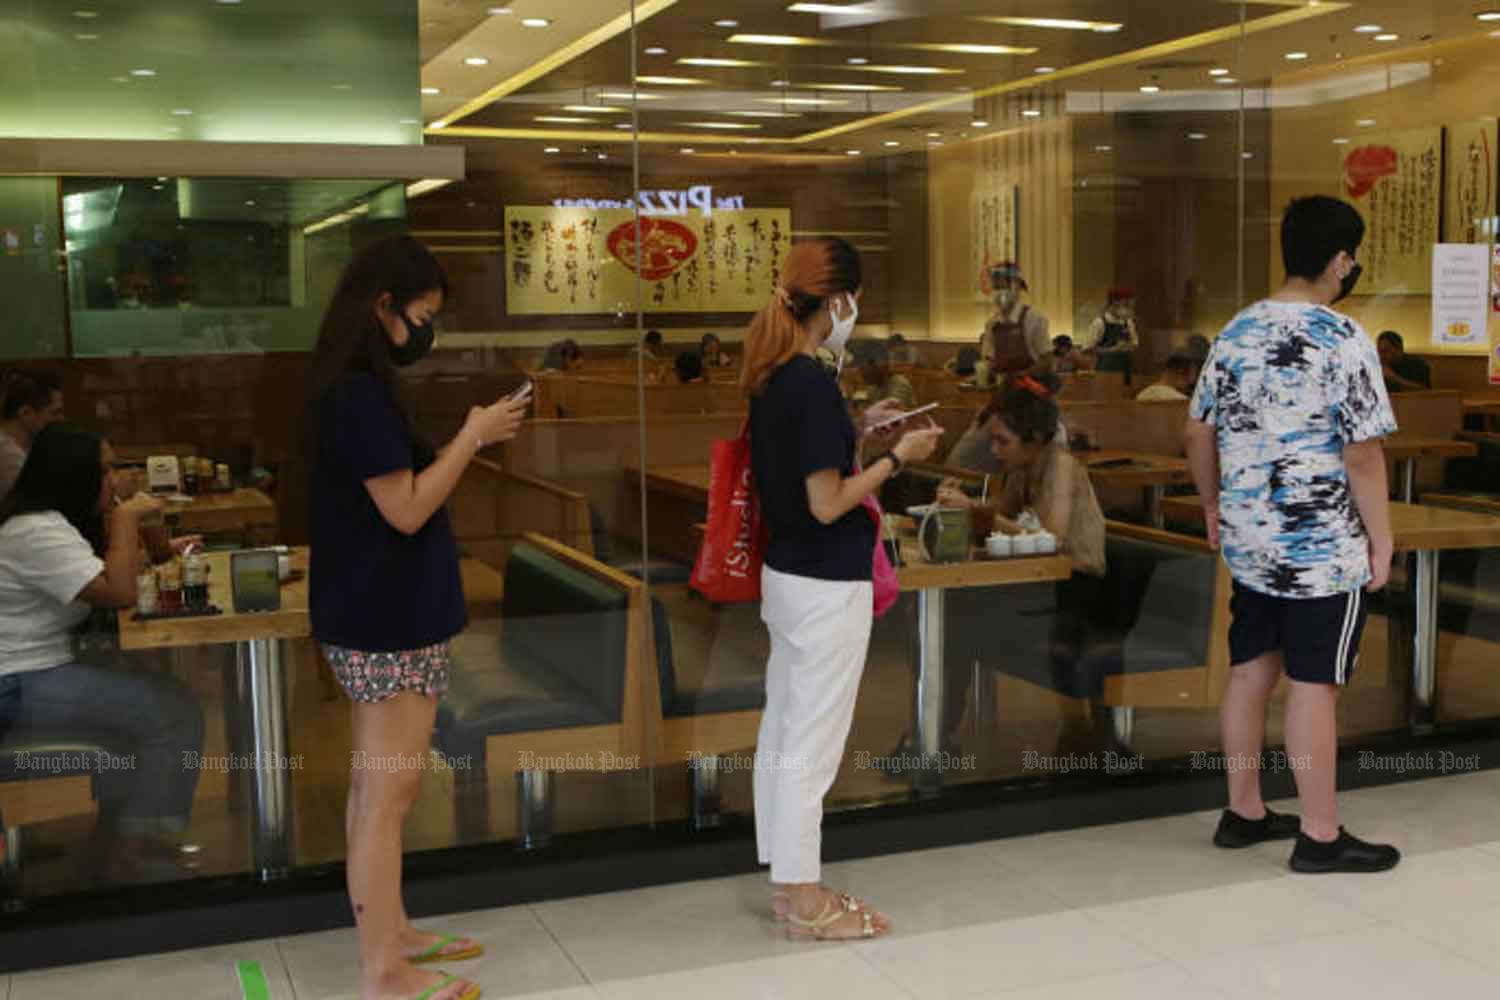 People queue up in front of a restaurant at a shopping mall in Pathum Thani province on Sunday. (Photo: Apichit Jinakul)